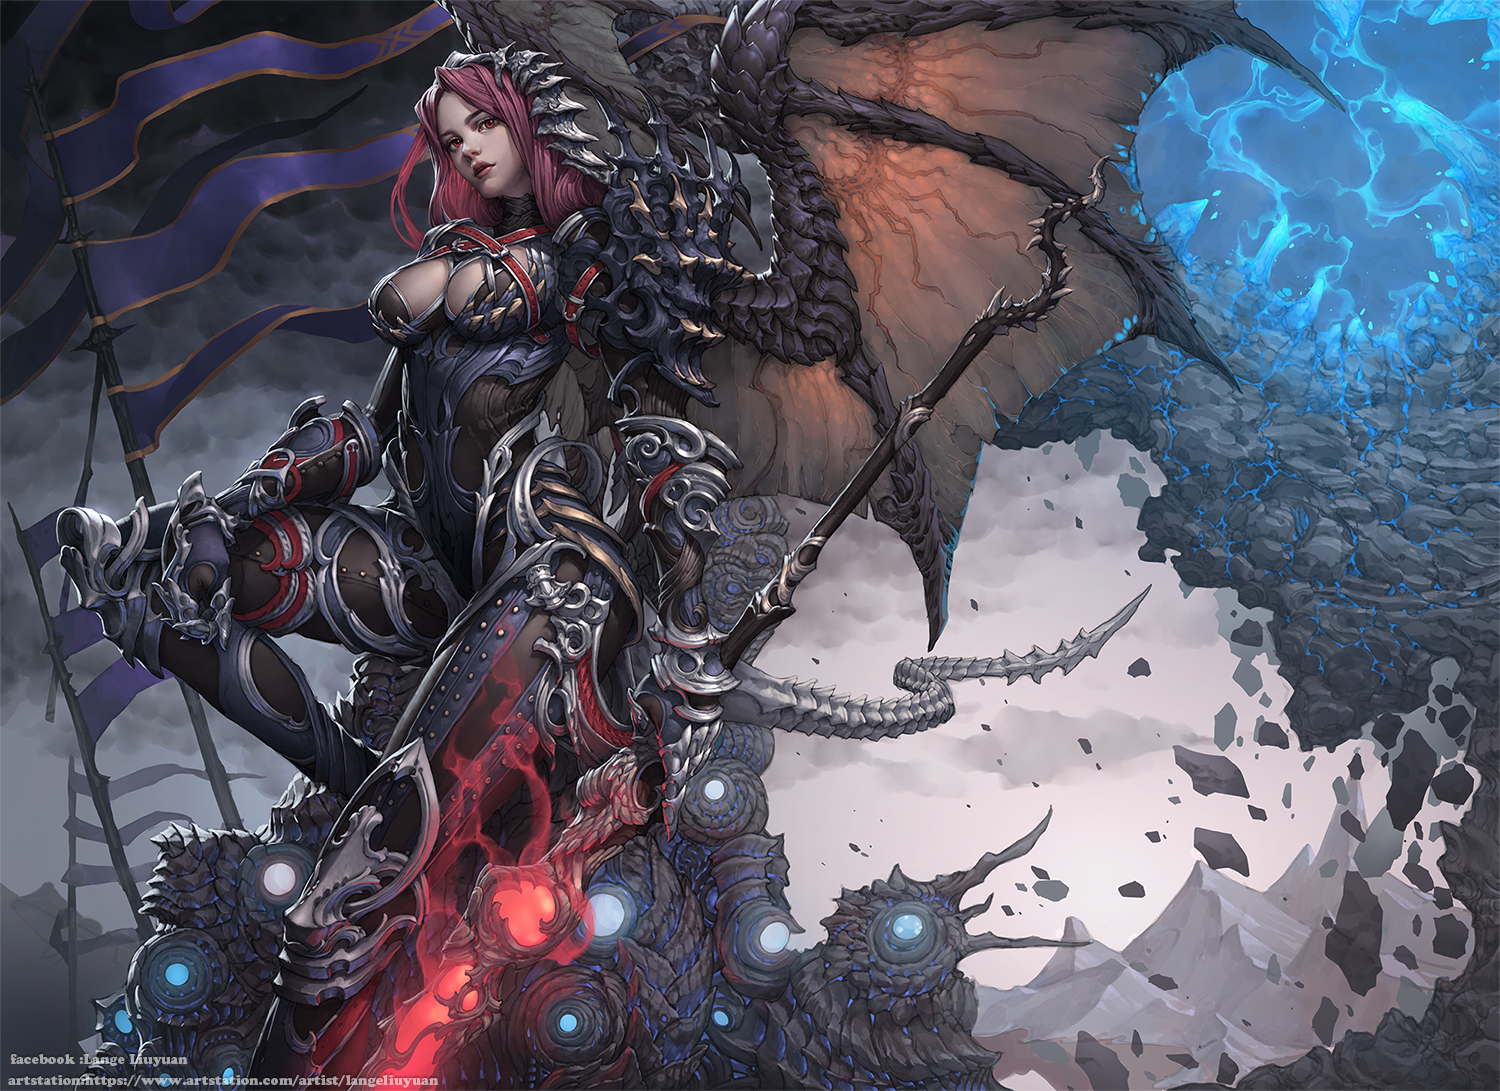 armor bodysuit breasts cleavage clouds fight_for_freedom gloves headdress lange long_hair magic realistic red_eyes red_hair sky spear tail watermark weapon wings